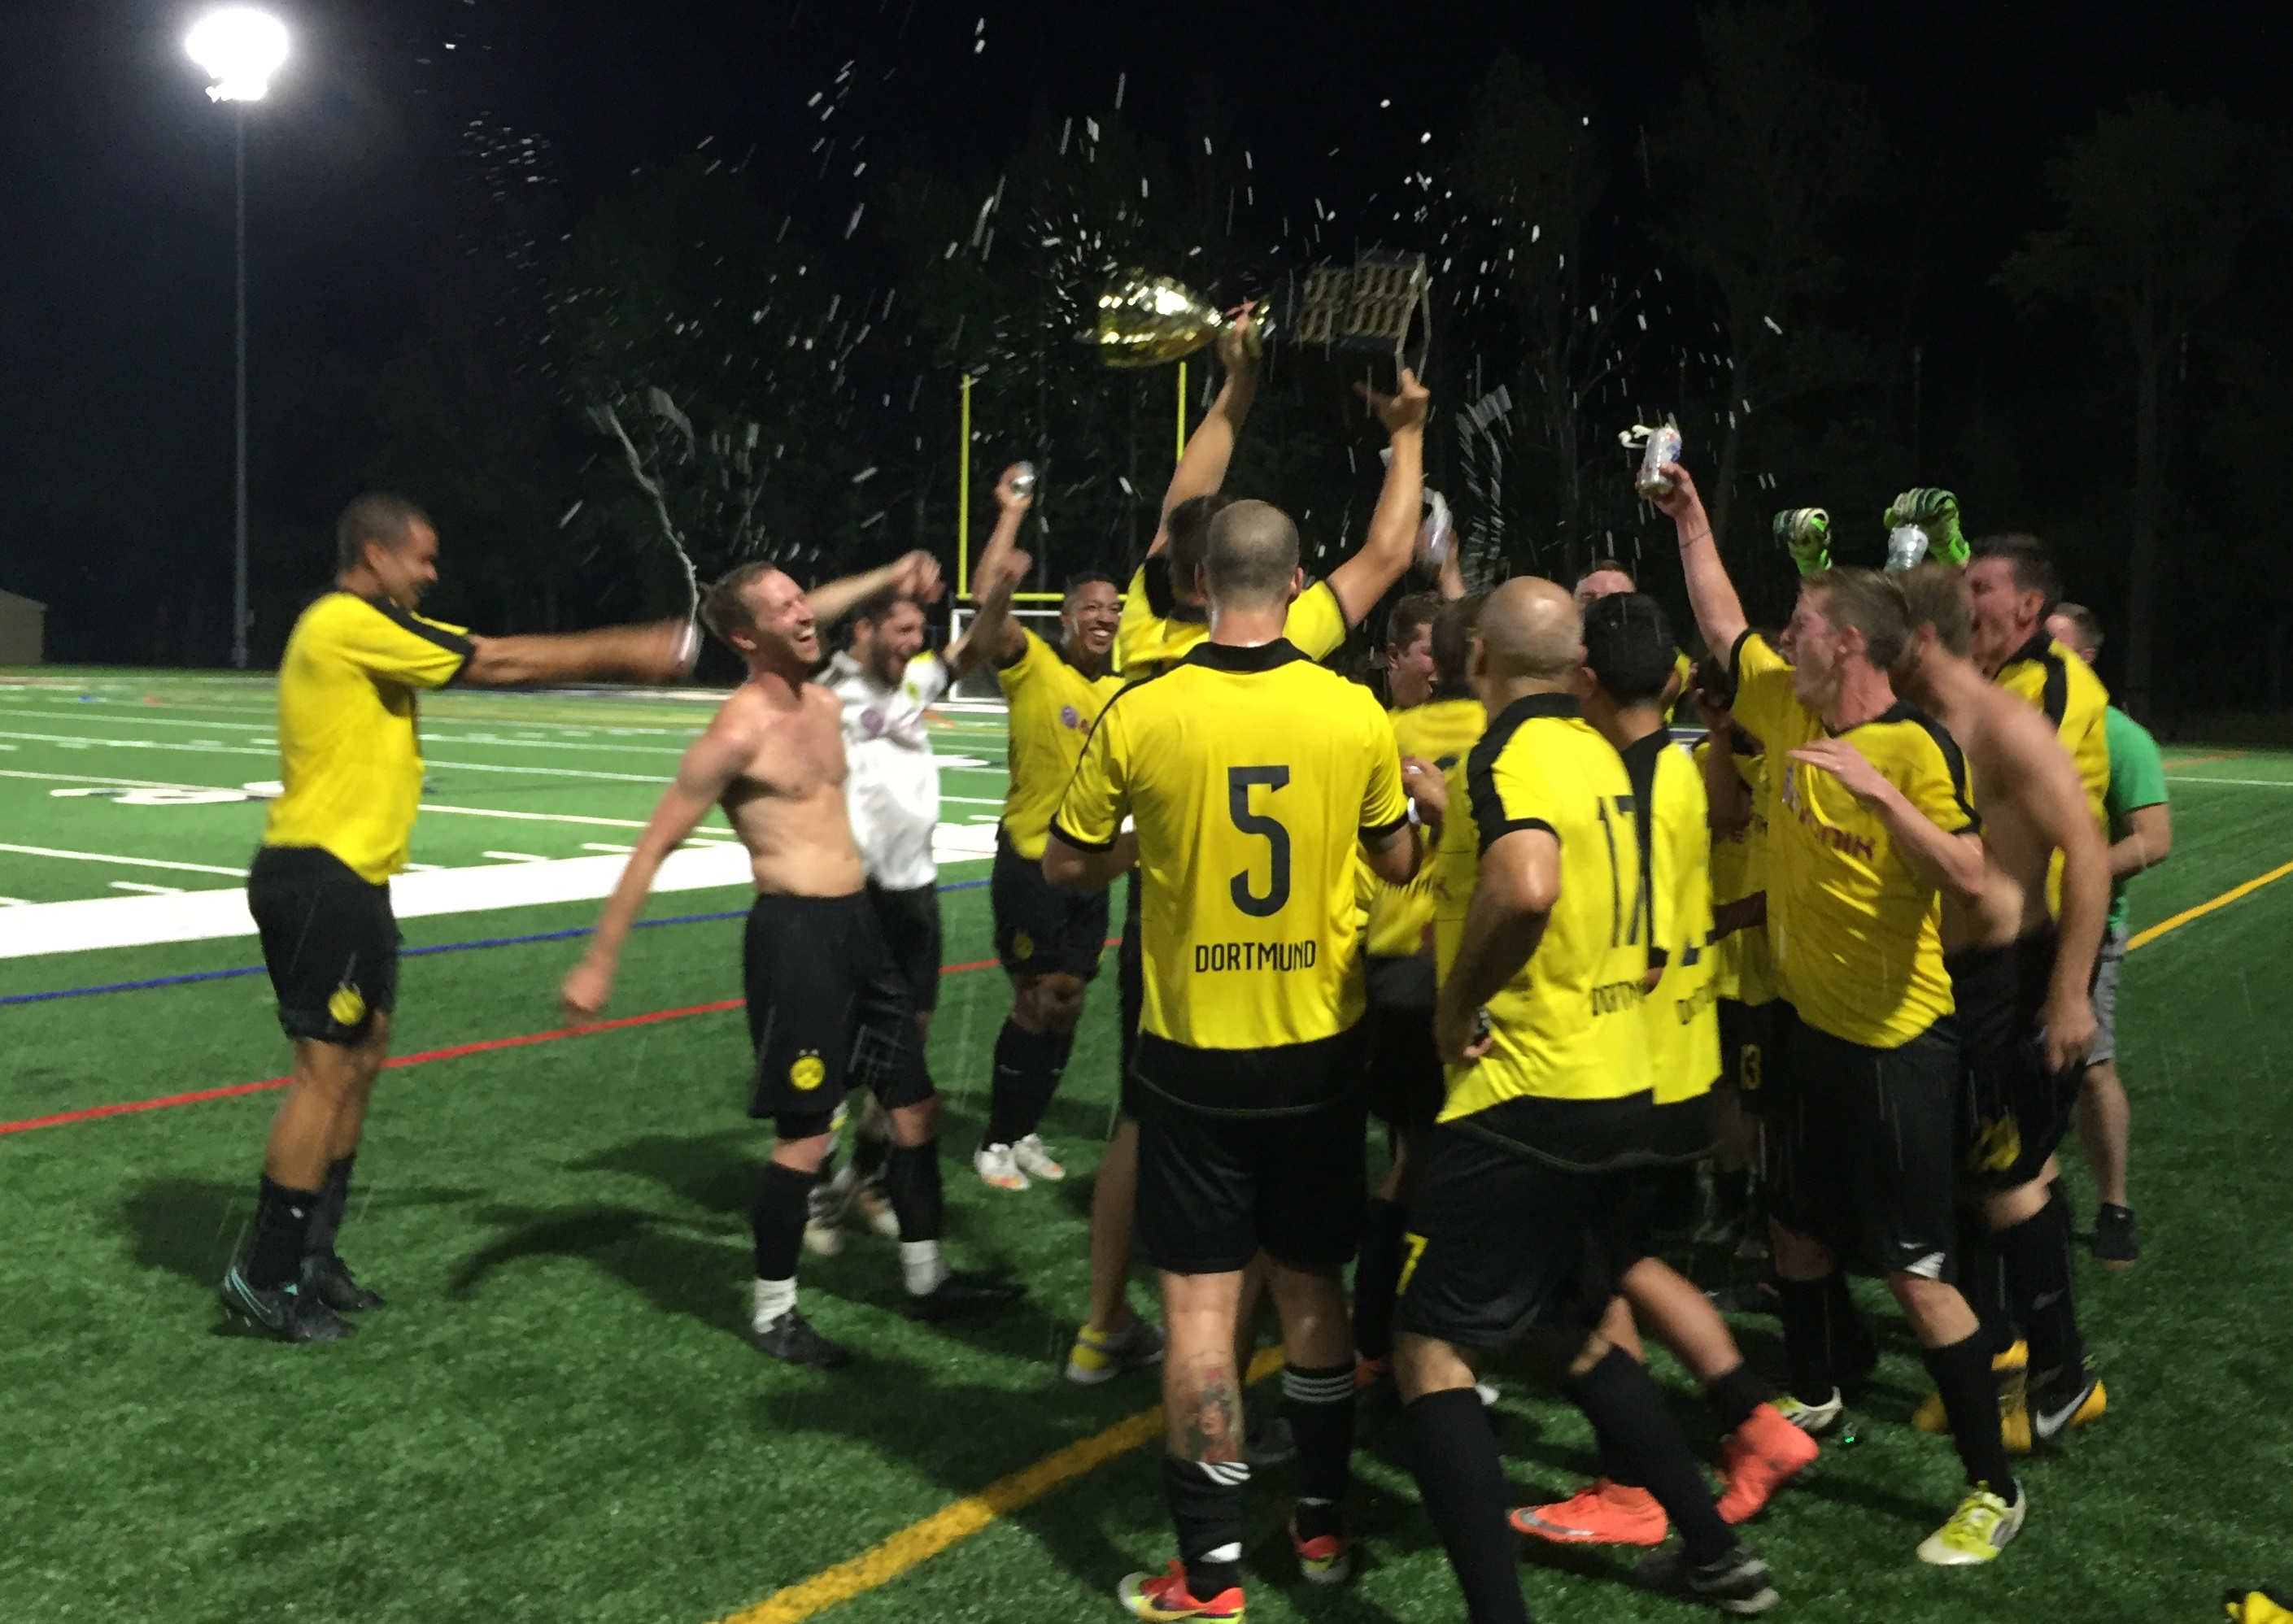 Clarence celebrate their 2016 Tehel Cup win. (Ben Tsujimoto/Buffalo News)